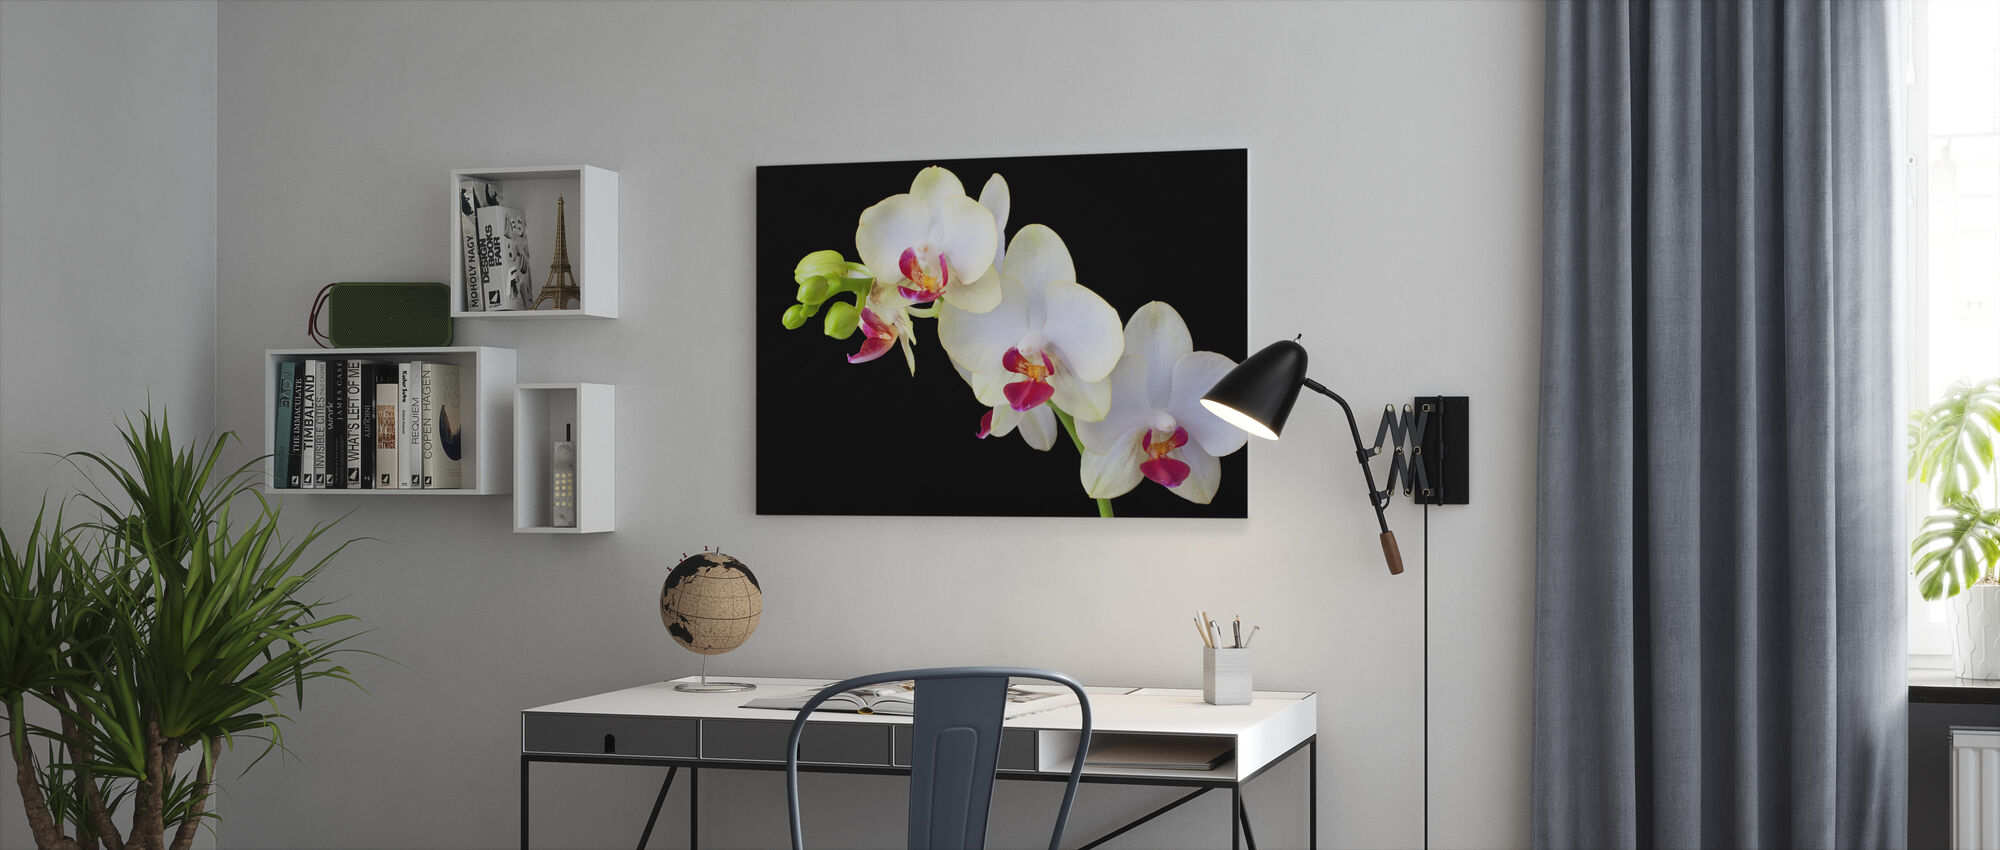 White Orchids on Black Background - Canvas print - Office